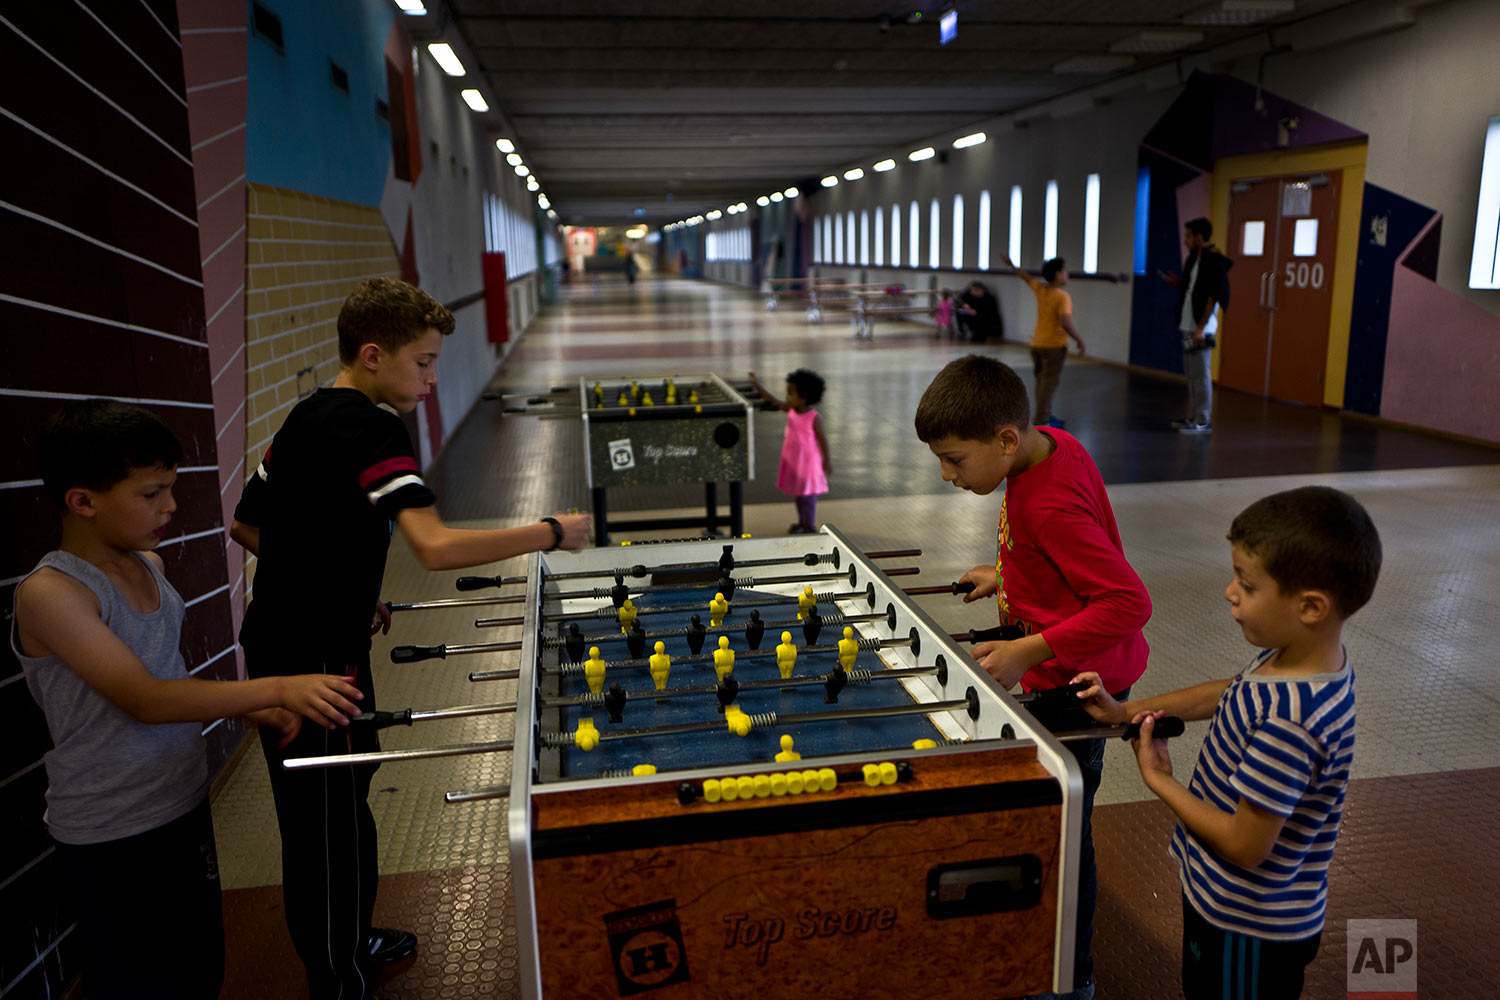 In this Monday, June 26, 2017 photo, refugee brothers from Baniyas, Syria, from right, Izzeldein Moustafa, 6, Abdulrahman, 10, Ahmad, 12 and Amir, 8, play table foosball in a corridor known as Kalverstraat, referring to a busy shopping street in Amsterdam, at the former prison of Bijlmerbajes in Amsterdam, Netherlands. (AP Photo/Muhammed Muheisen)